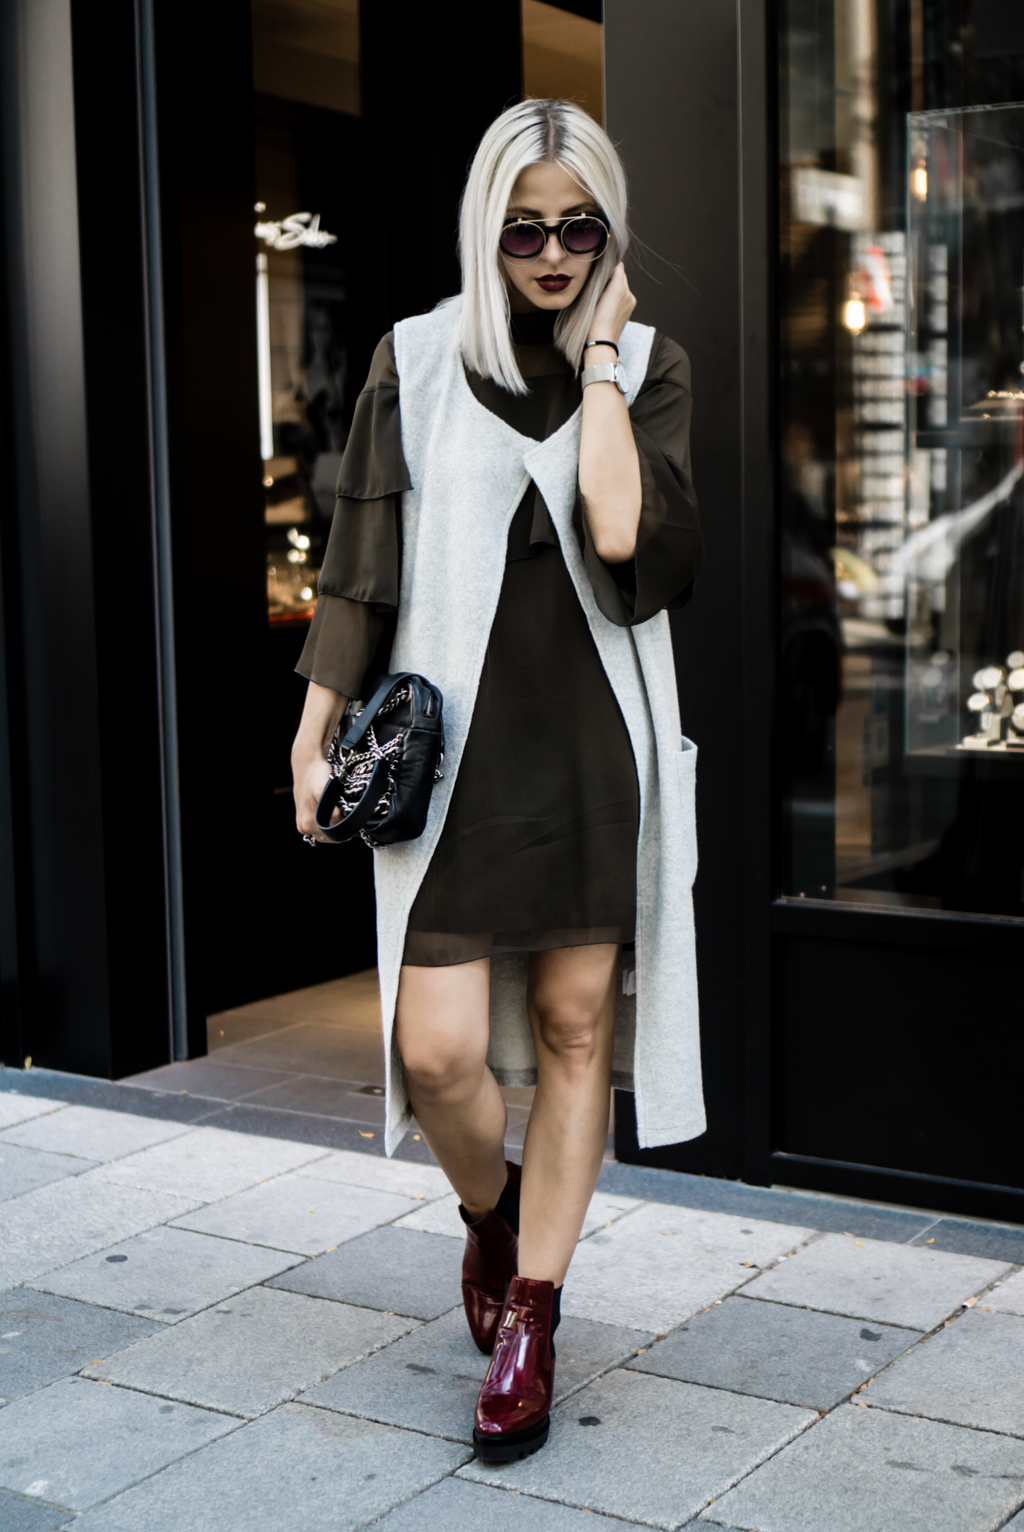 Frilled Dress and Chunky Platform Boots